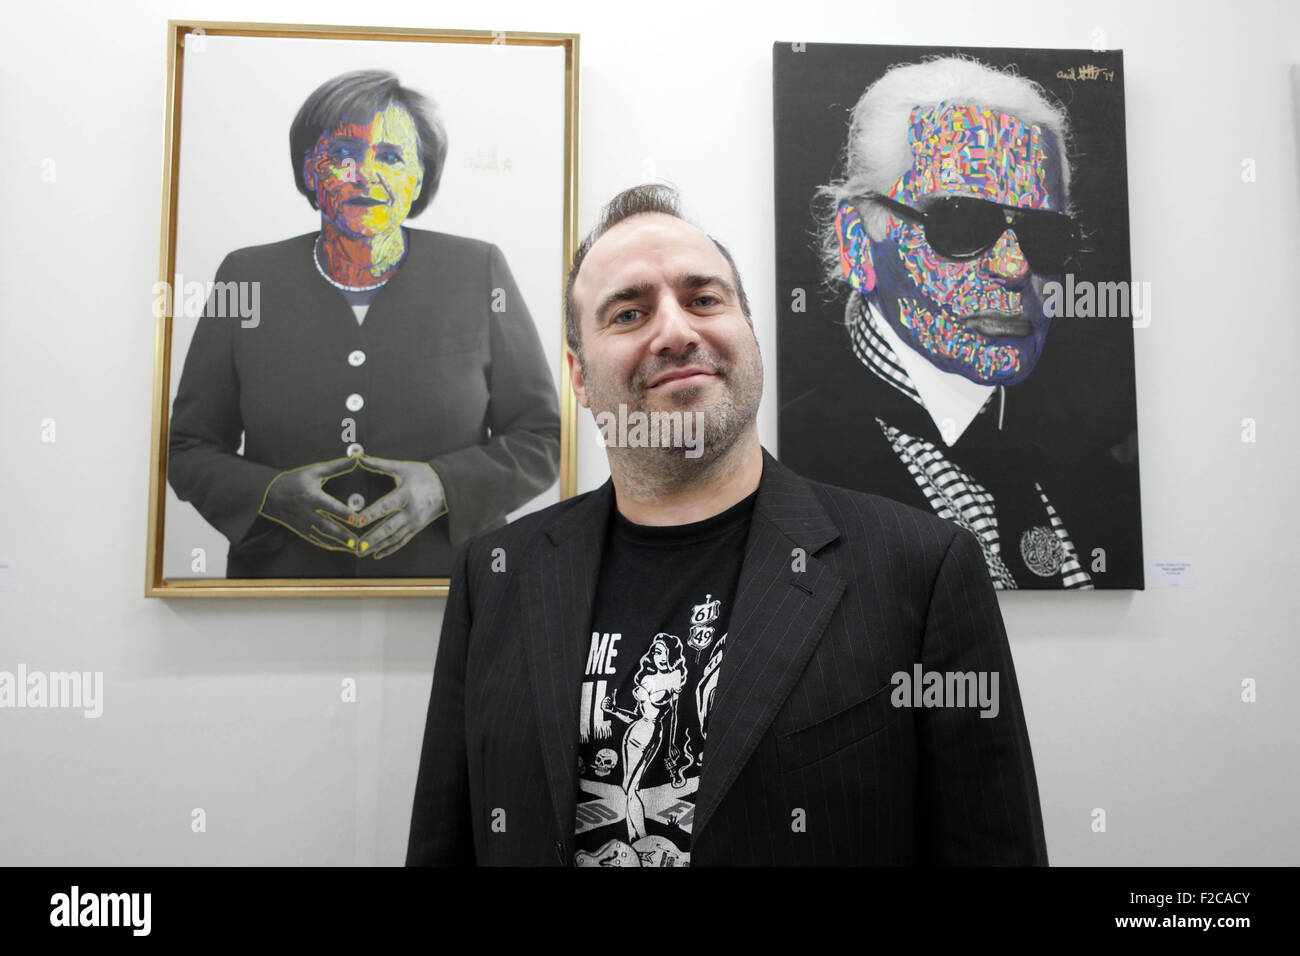 Berlin, Germany. 16th Sep, 2015. Artist Ariel Shallit poses in front of his works at the art fair 'Berliner Liste' Stock Photo